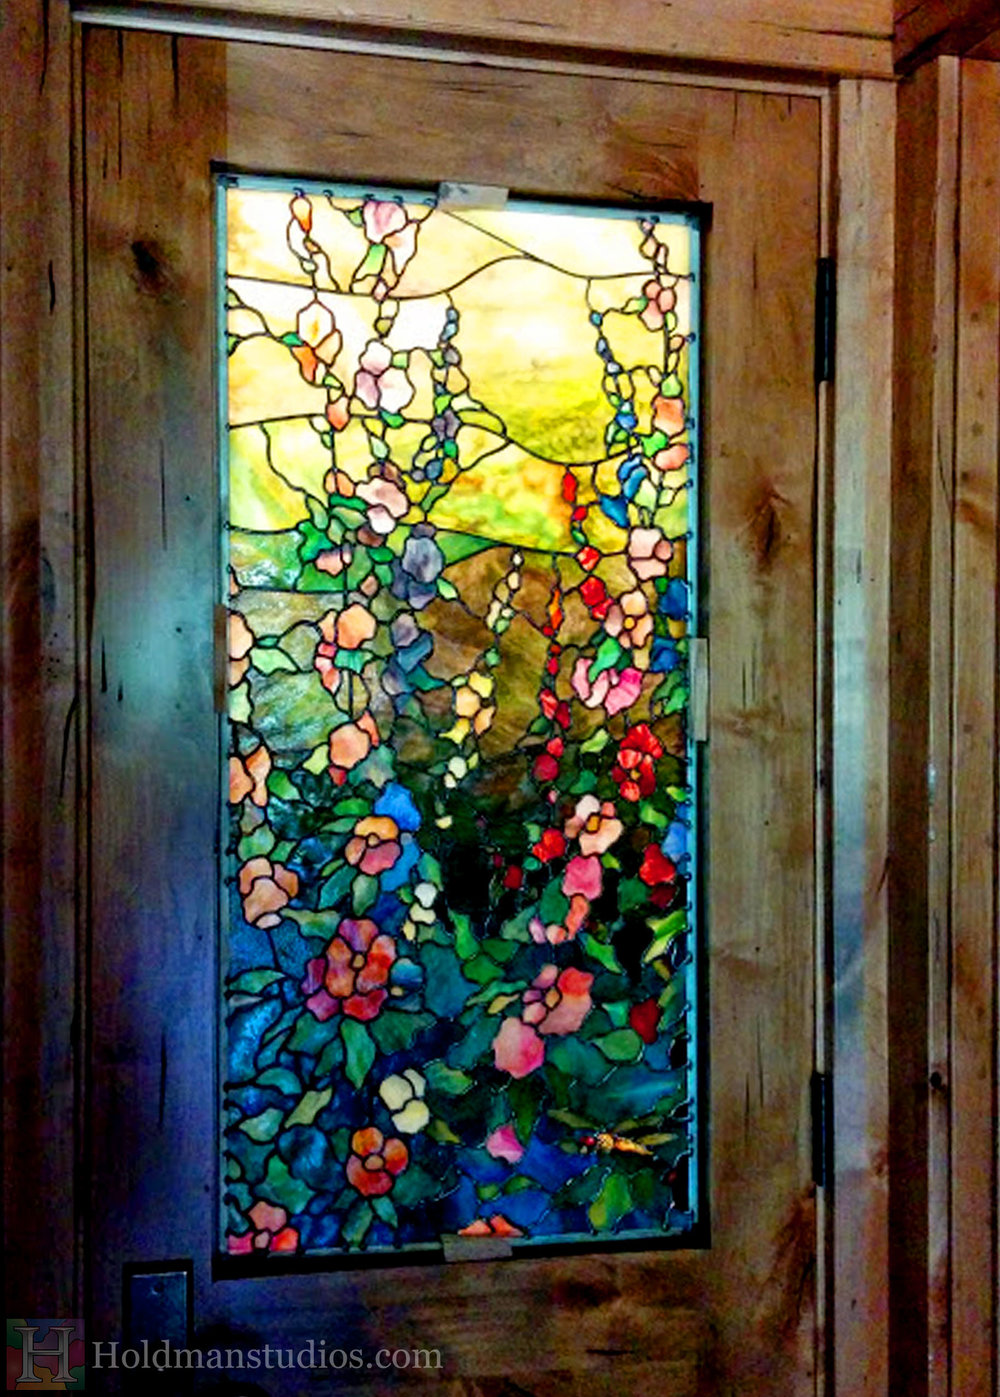 Close up of stained glass kitchen door window of flowers, leaves, rocks, and foliage. Created by artists under the direction of Tom Holdman at Holdman Studios